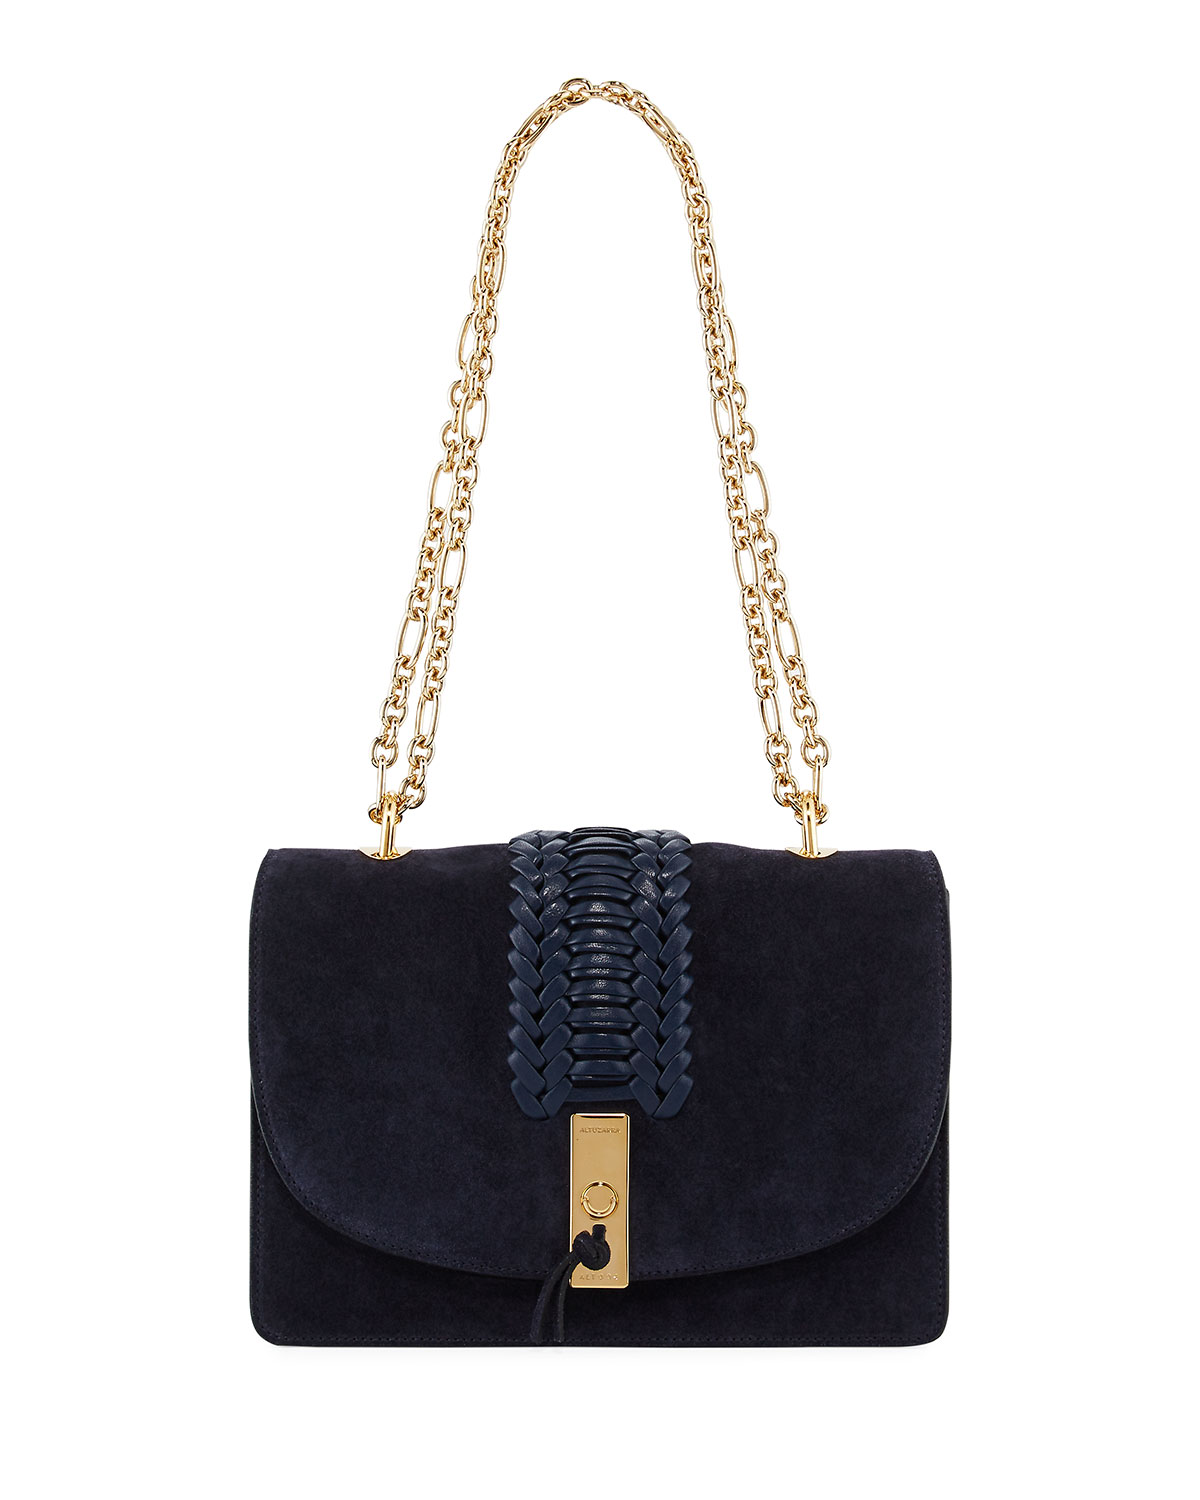 Ghianda Braided Chain Shoulder Bag, Blue